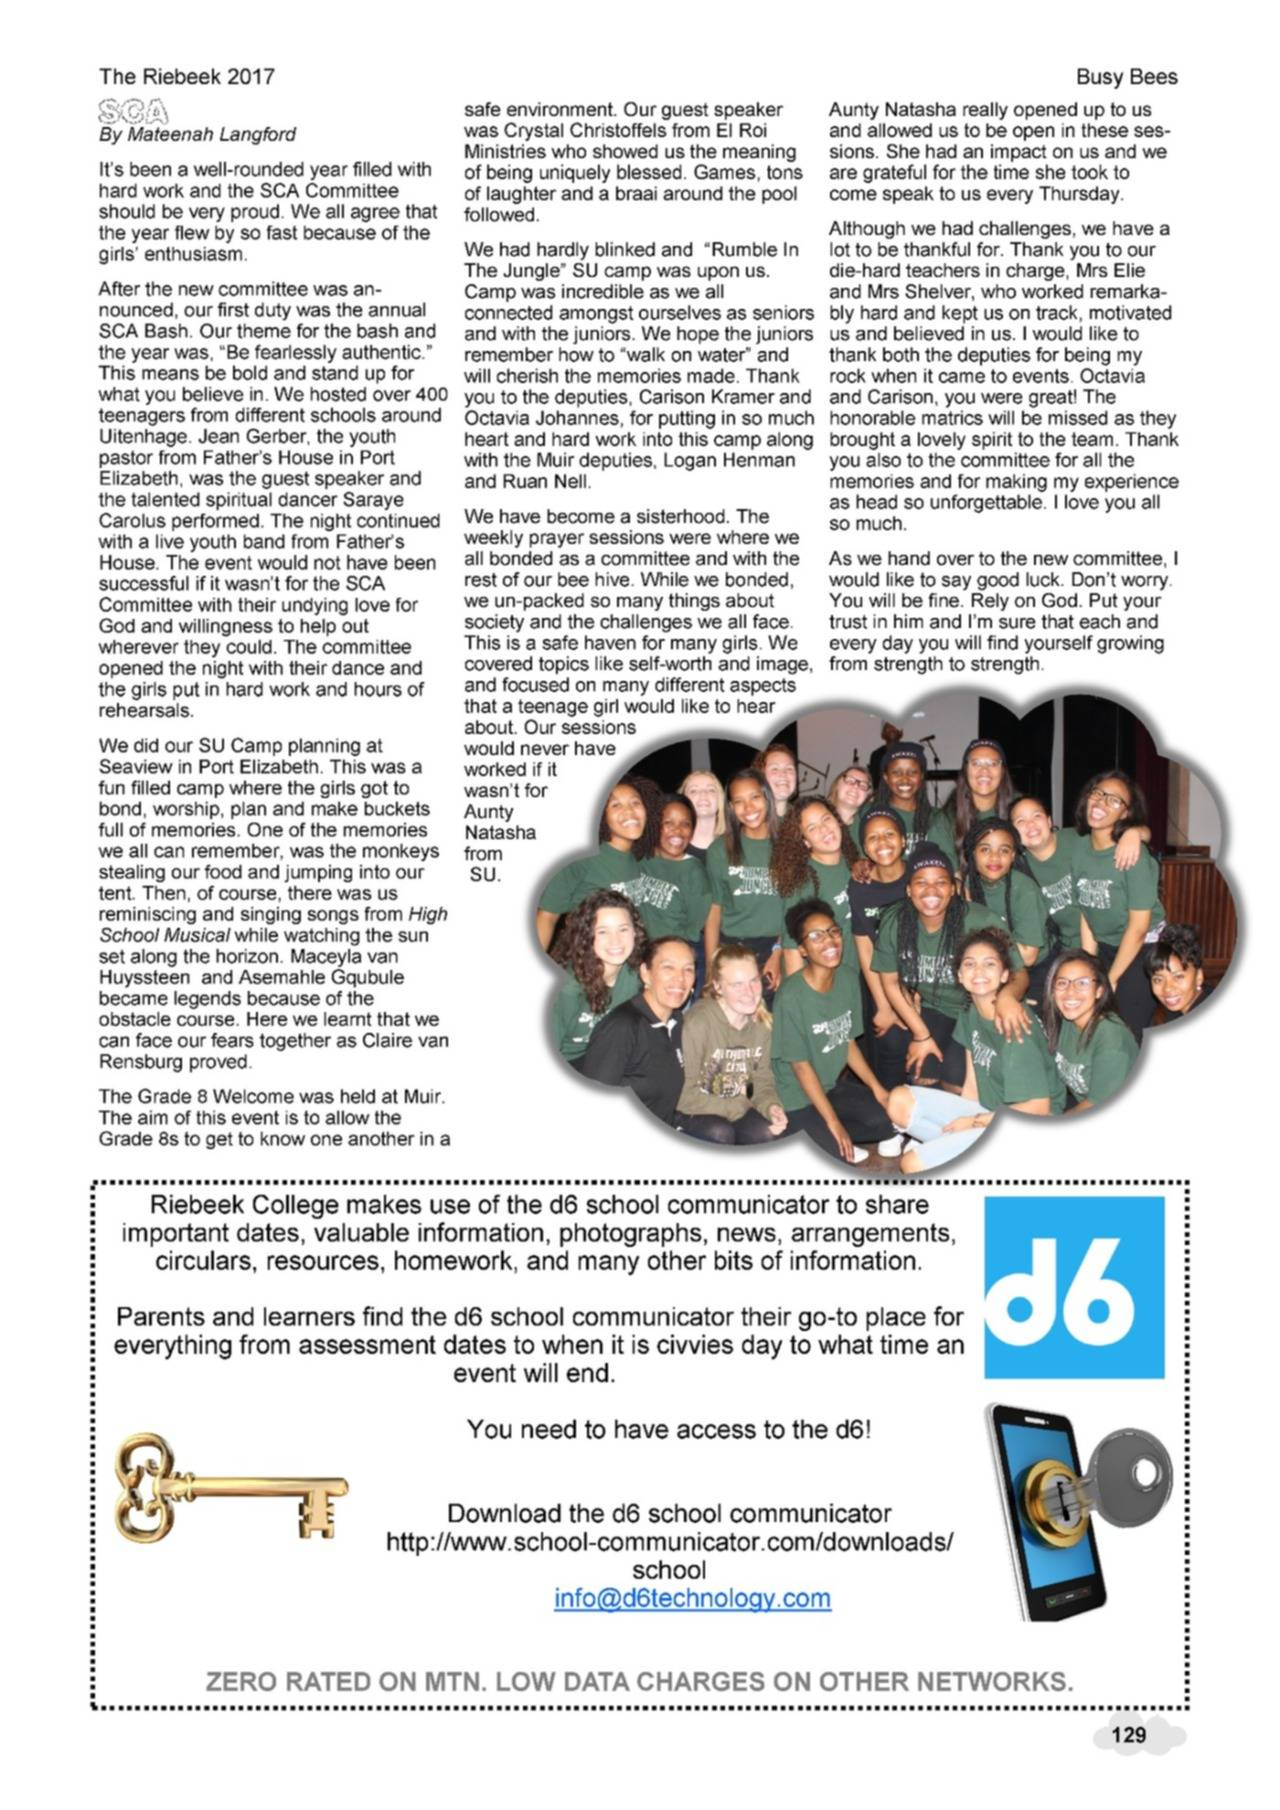 riebeek magazine all sectionspage129